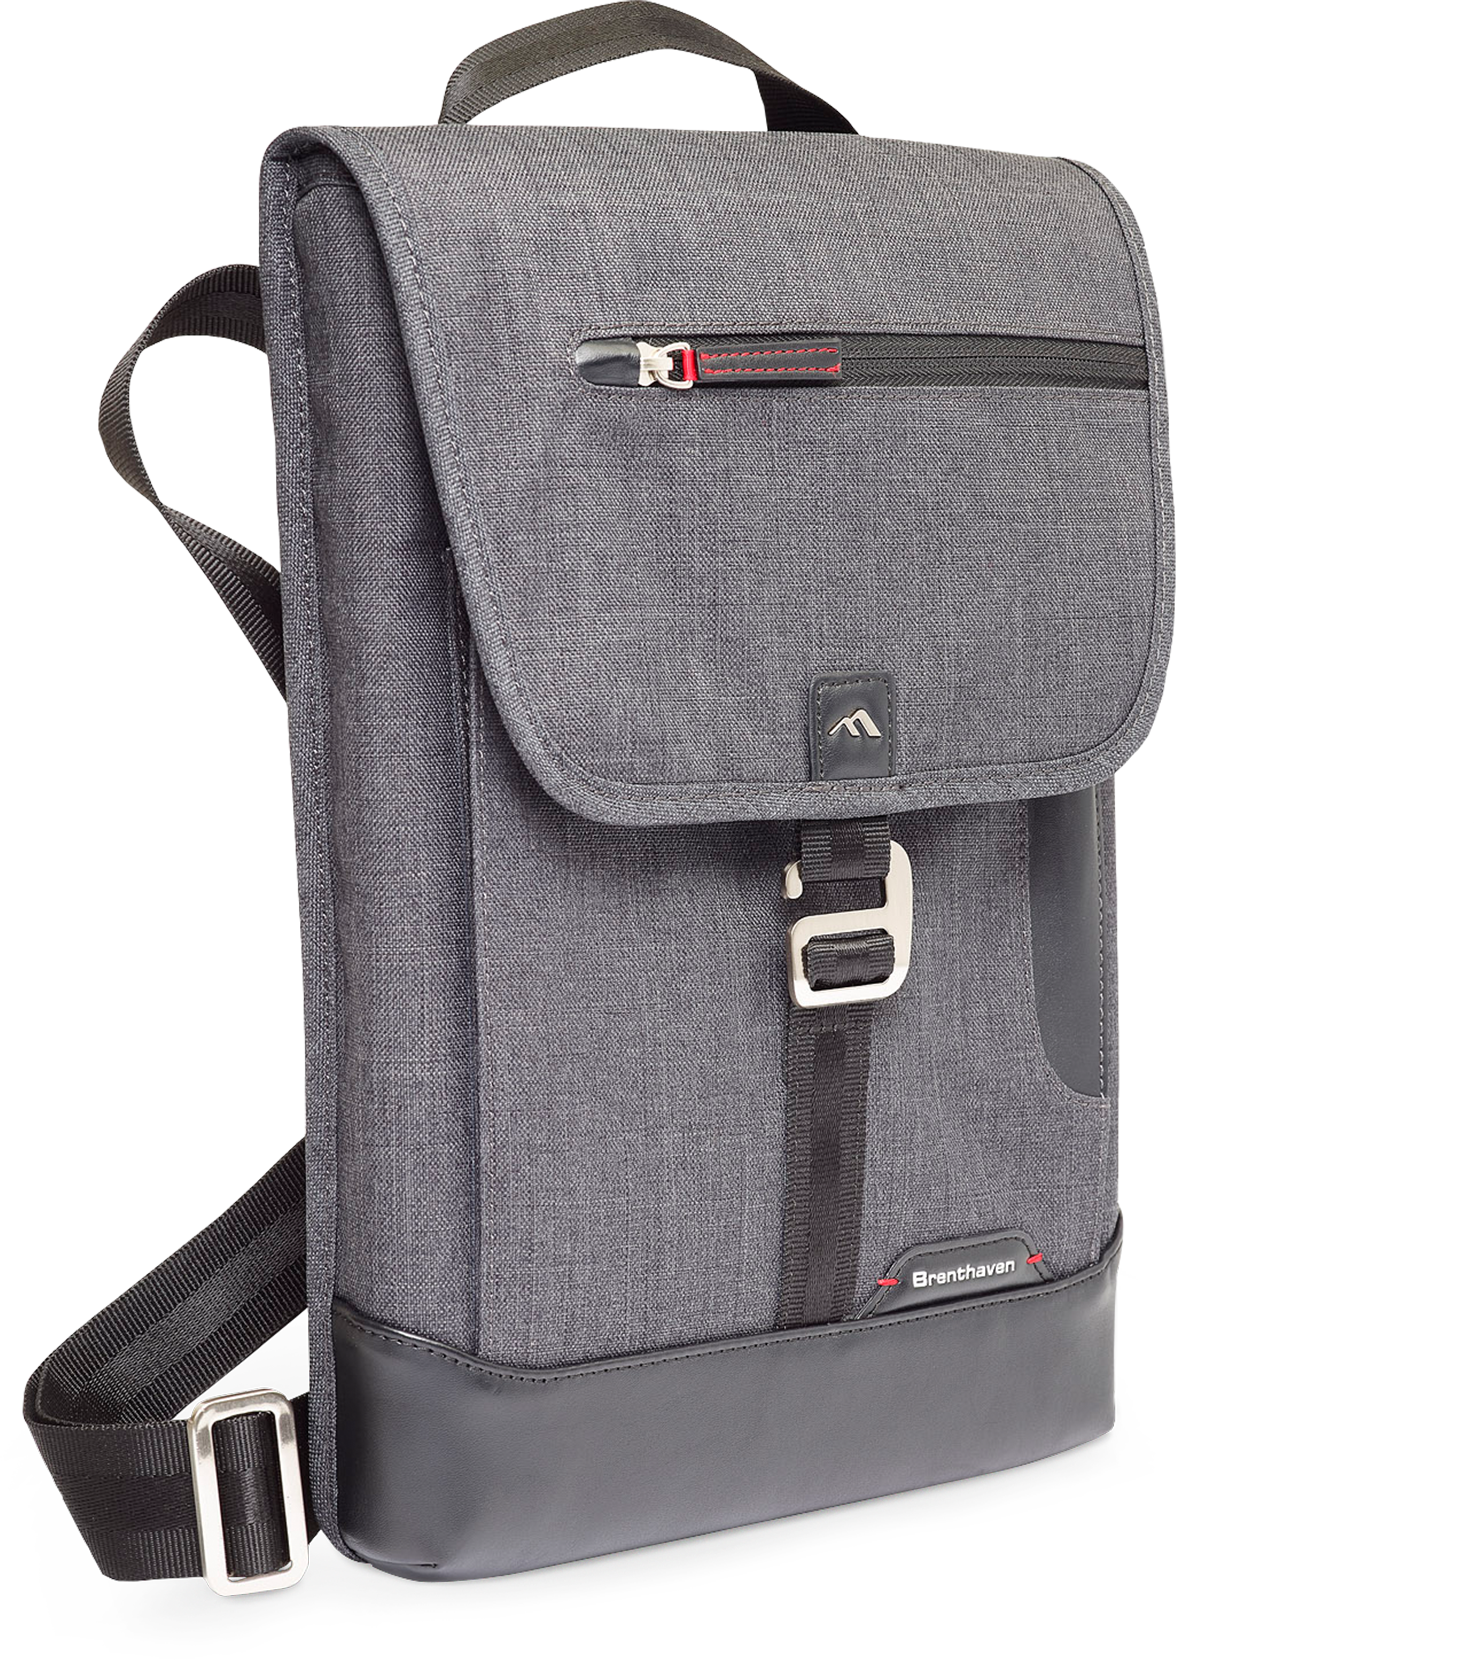 Brenthaven Collins Vertical Messenger Bag for Surface Pro 4 (Graphite)